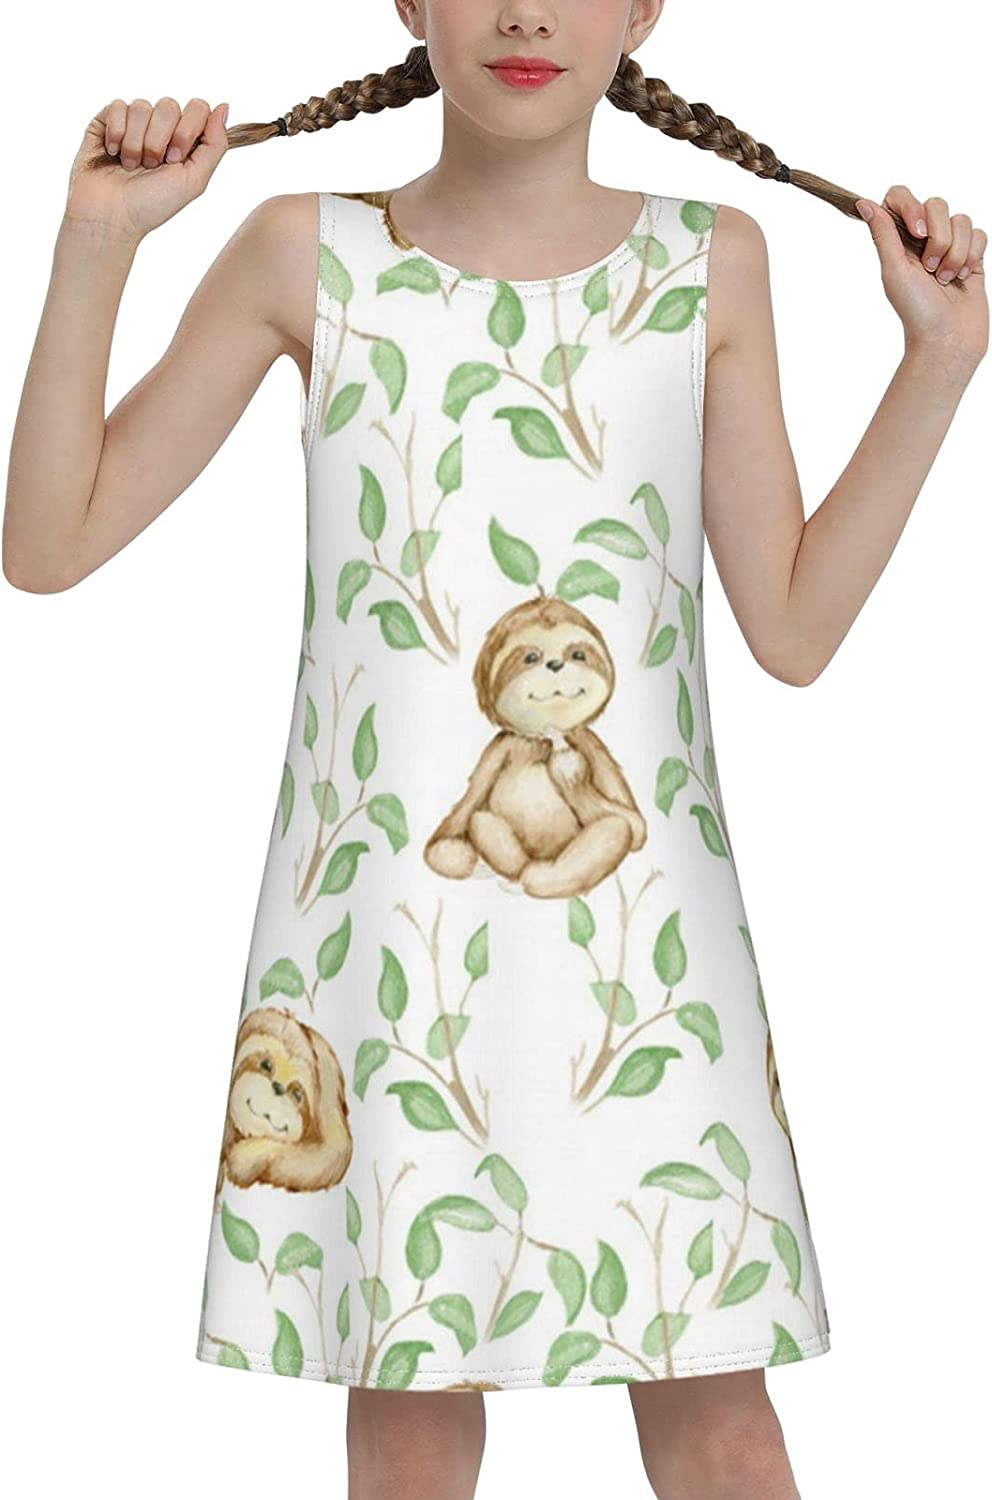 YhrYUGFgf Cute Sloth Watercolor Sleeveless Dress for Girls Casual Printed Vest Skirt